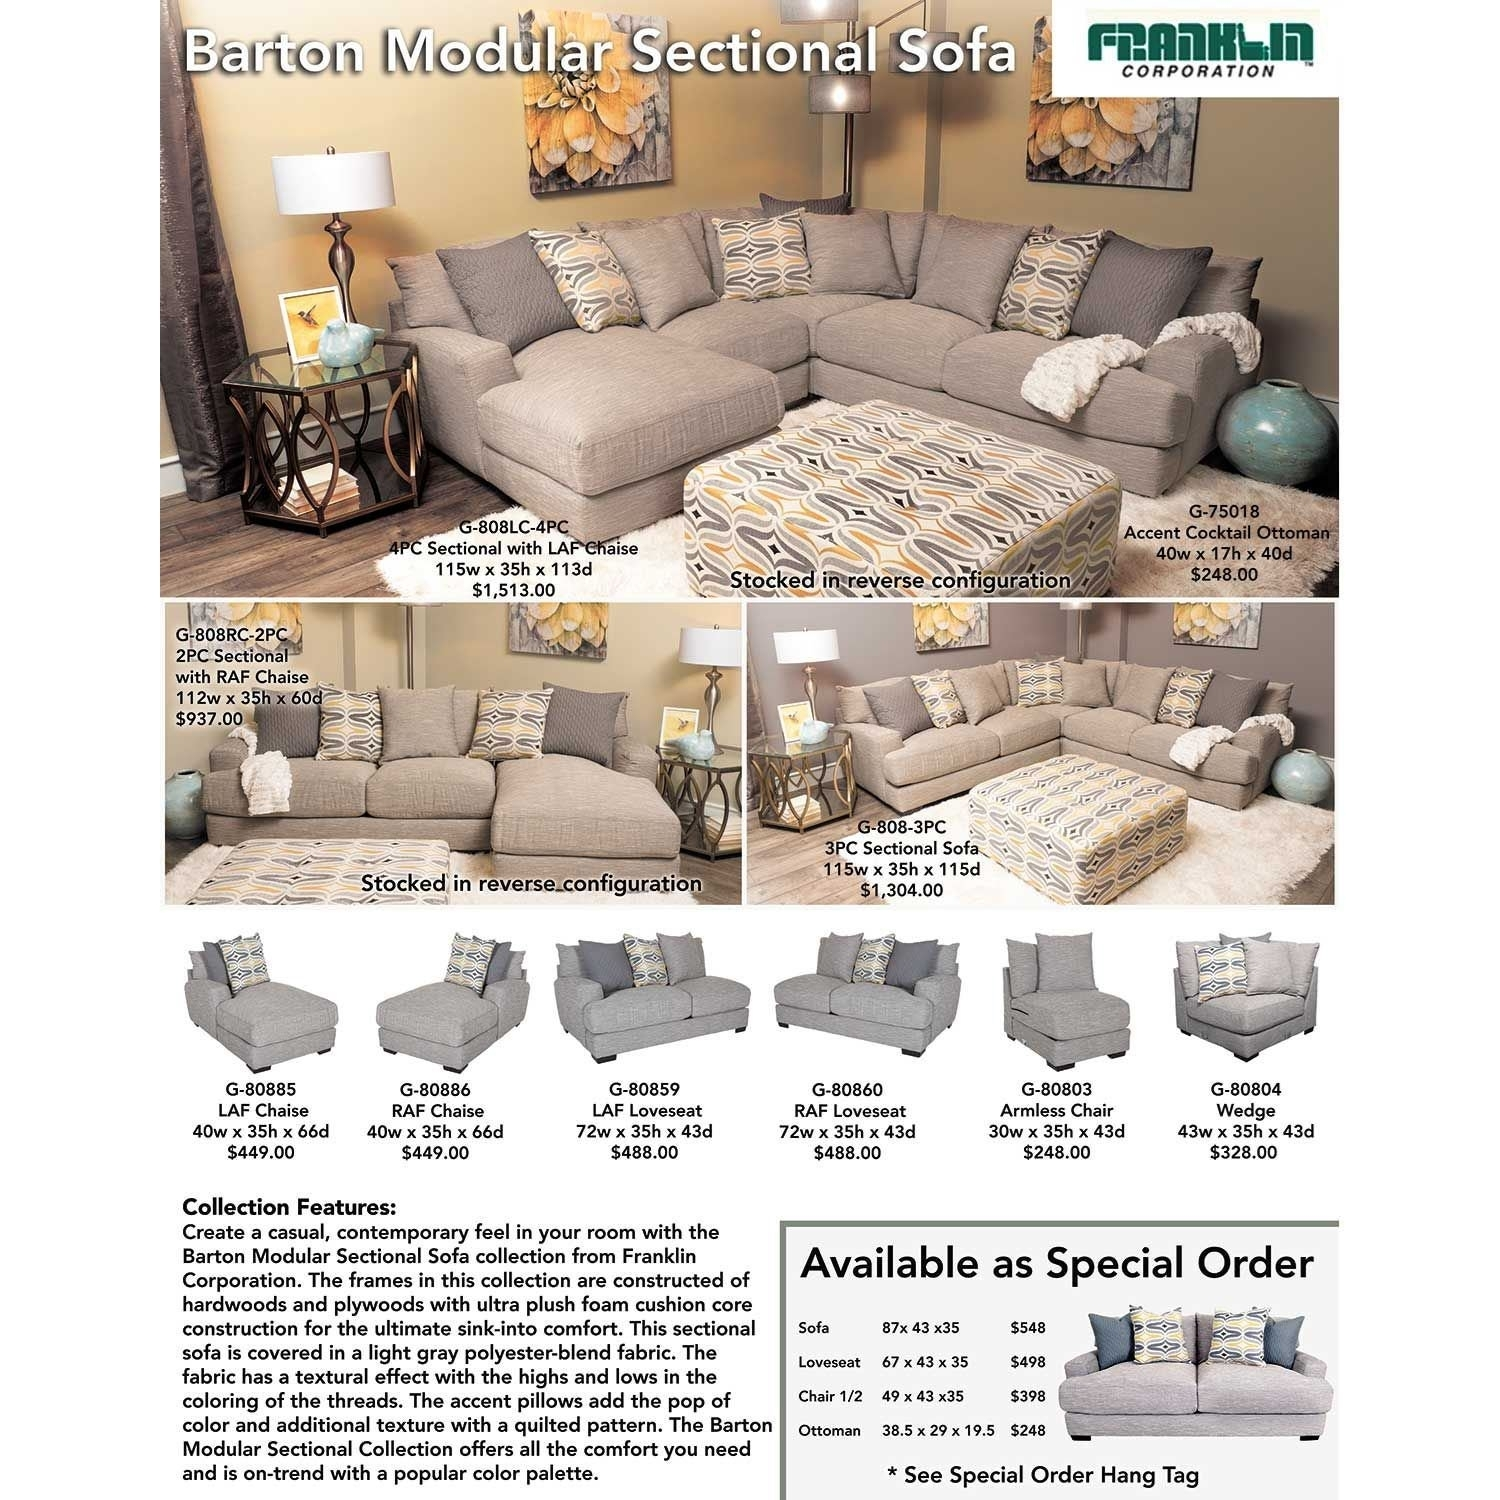 Barton 3Pc Sectional Sofa | G 808 3Pc | 80859 80860 80804 | Franklin For Burton Leather 3 Piece Sectionals With Ottoman (Image 2 of 25)